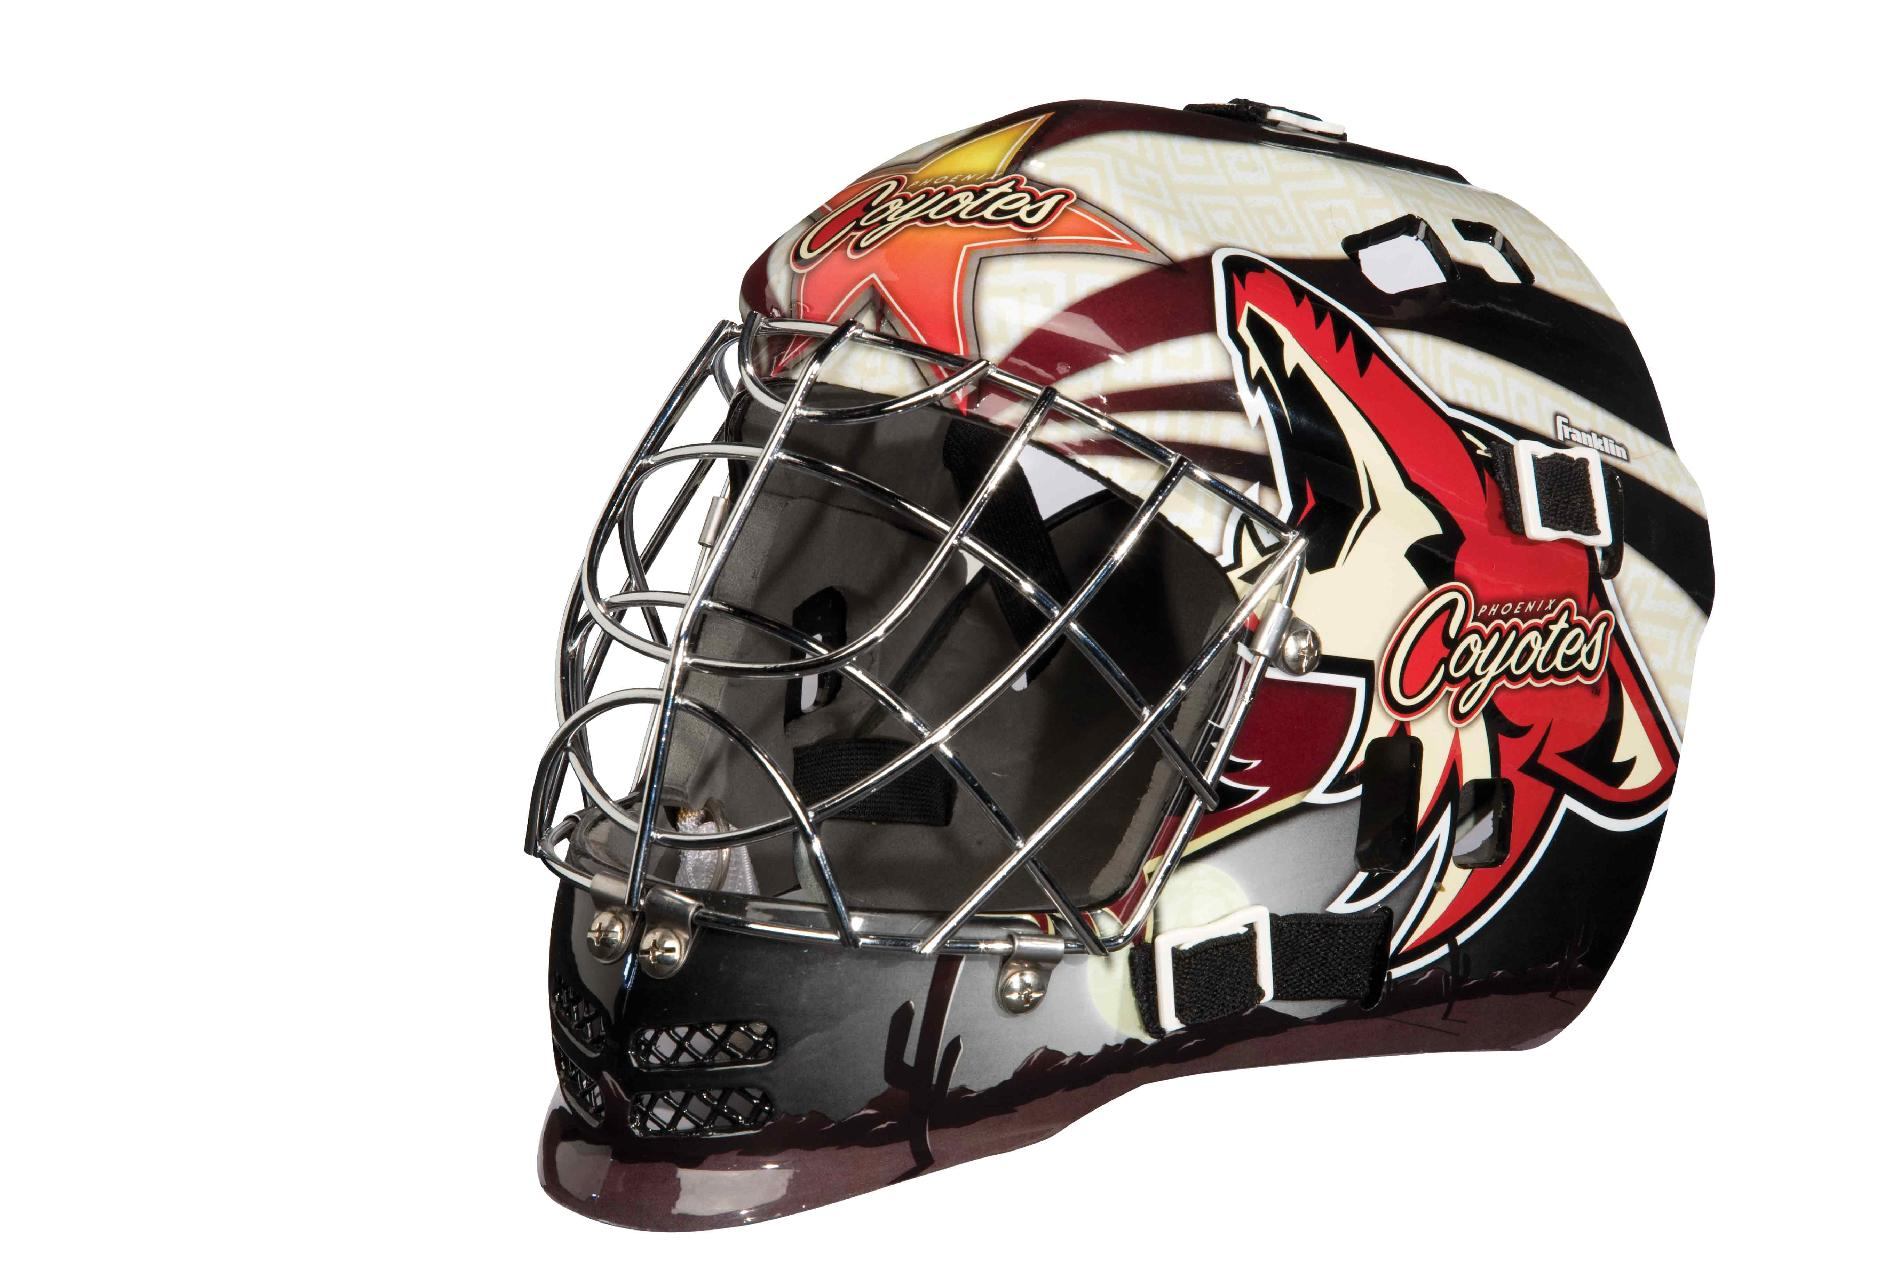 NHL® Team SX Comp Goalie Mask 100 Goalie Face Mask (Coyotes)